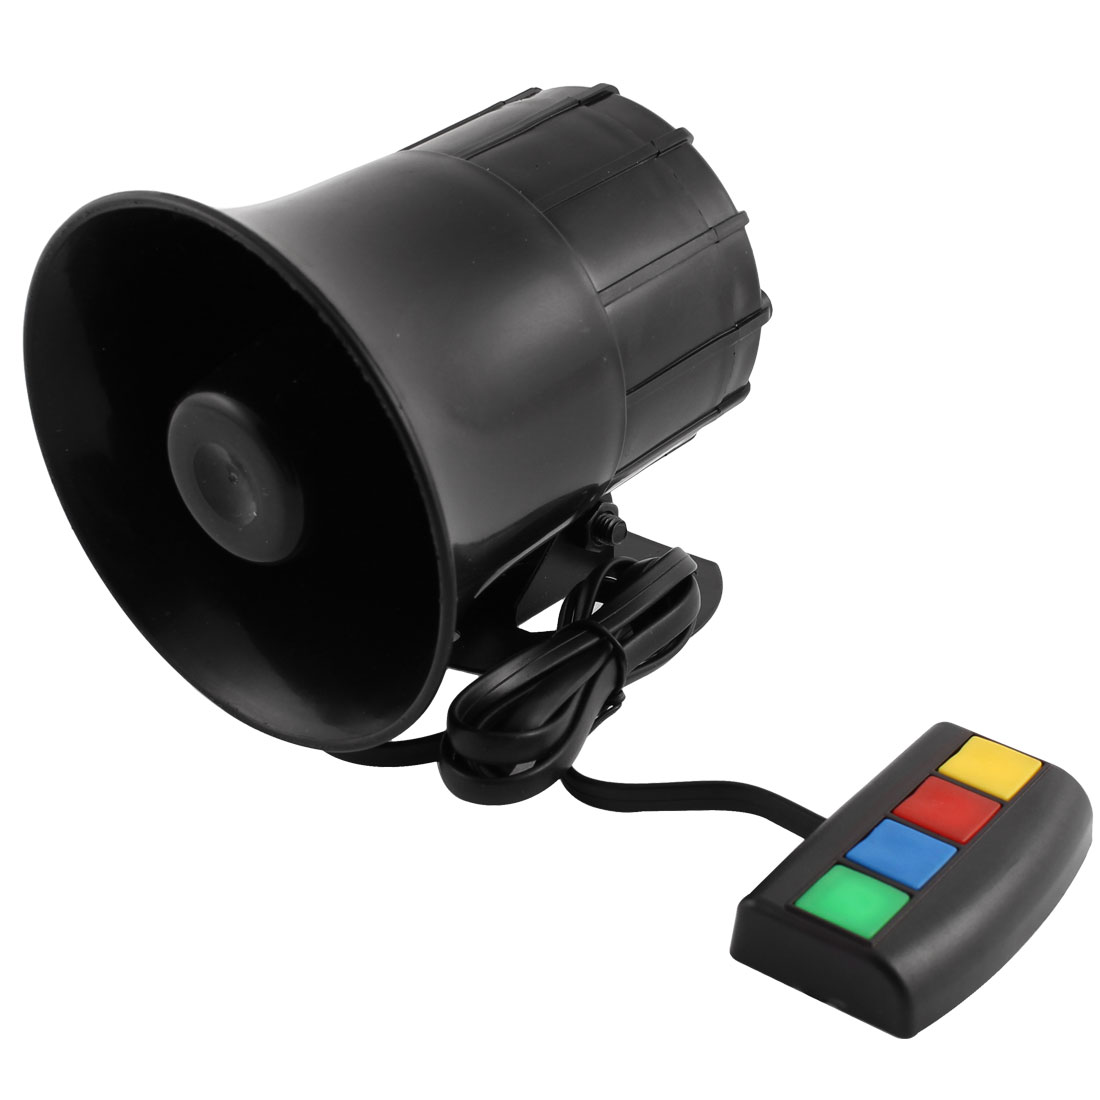 DC 12V Four Sound Electronic Musical Horn for Motorbike